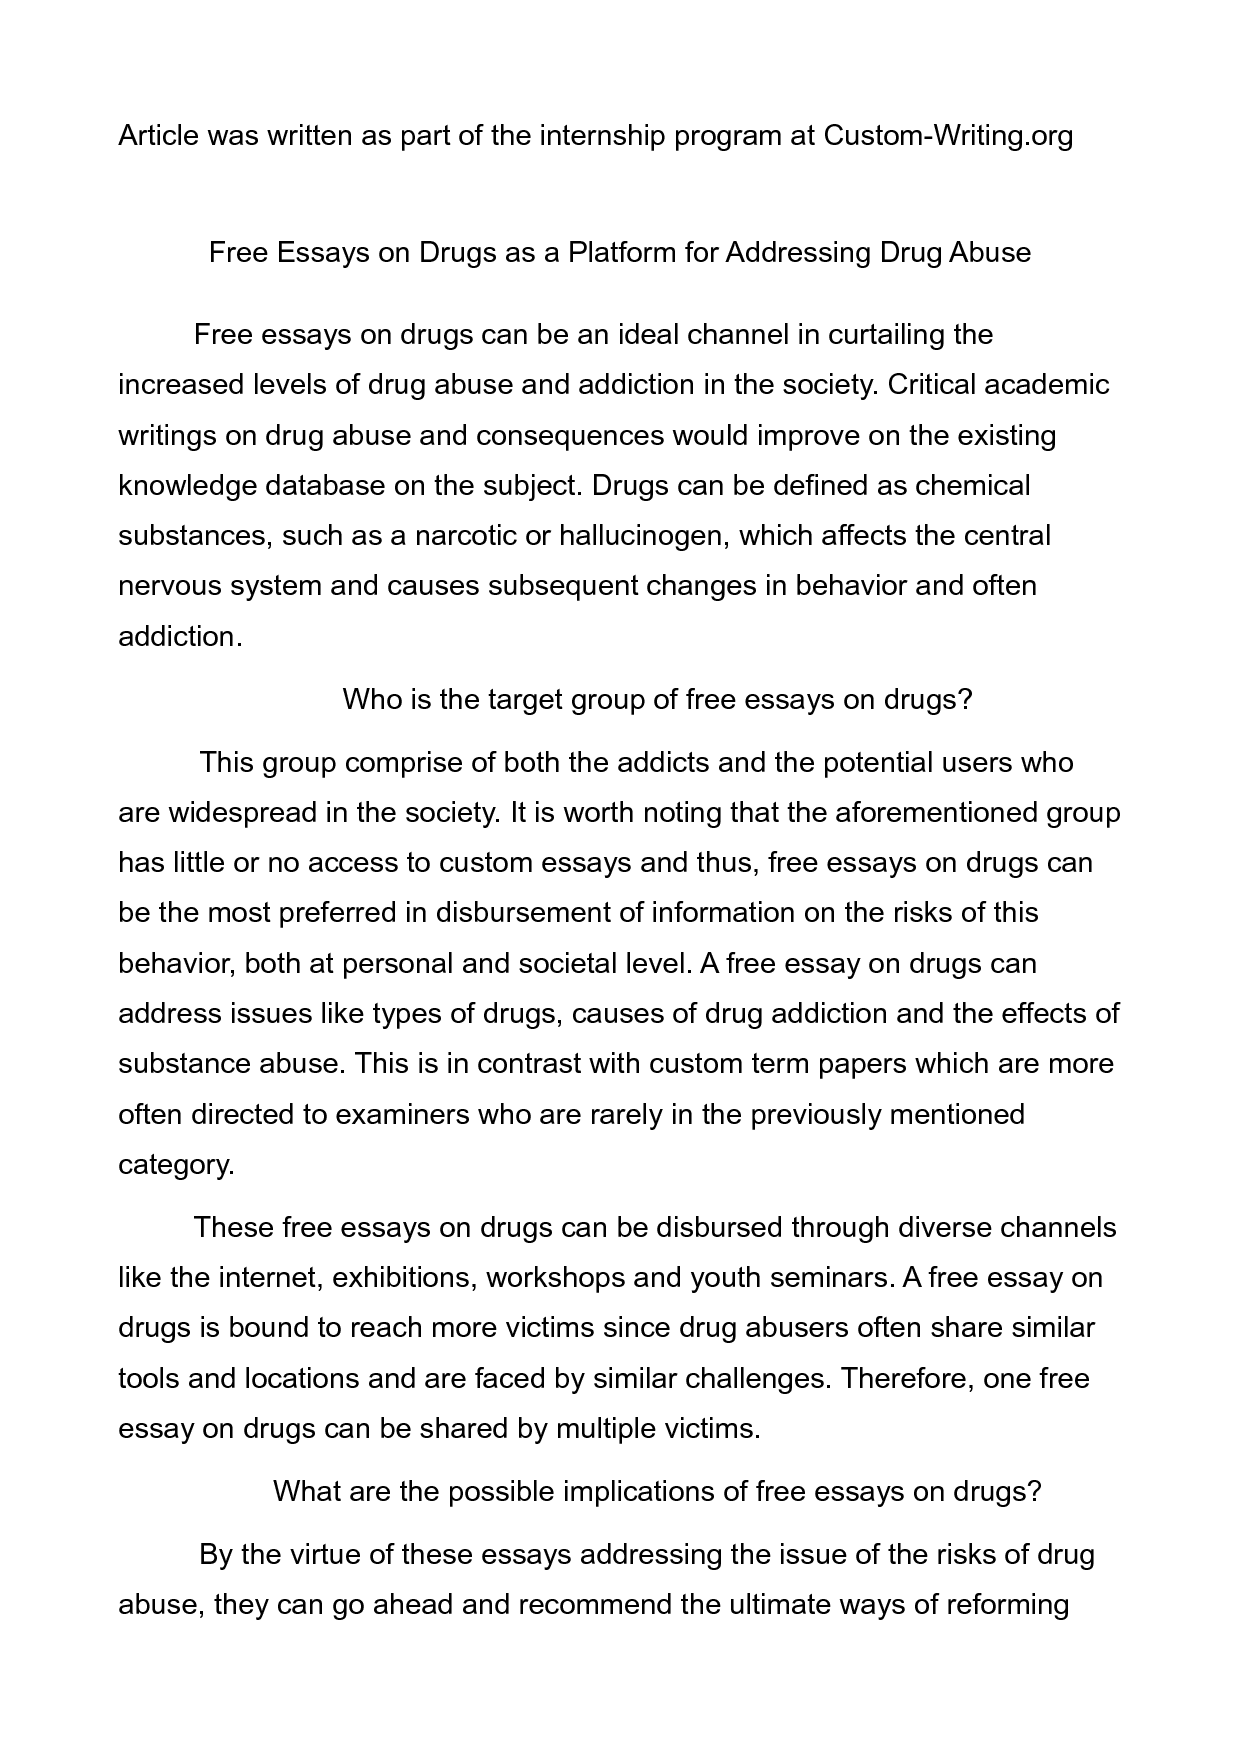 006 Argumentation Essay About Drugs Dreaded Argumentative Conclusion Sentence Starters Introduction Format 9th Grade Full